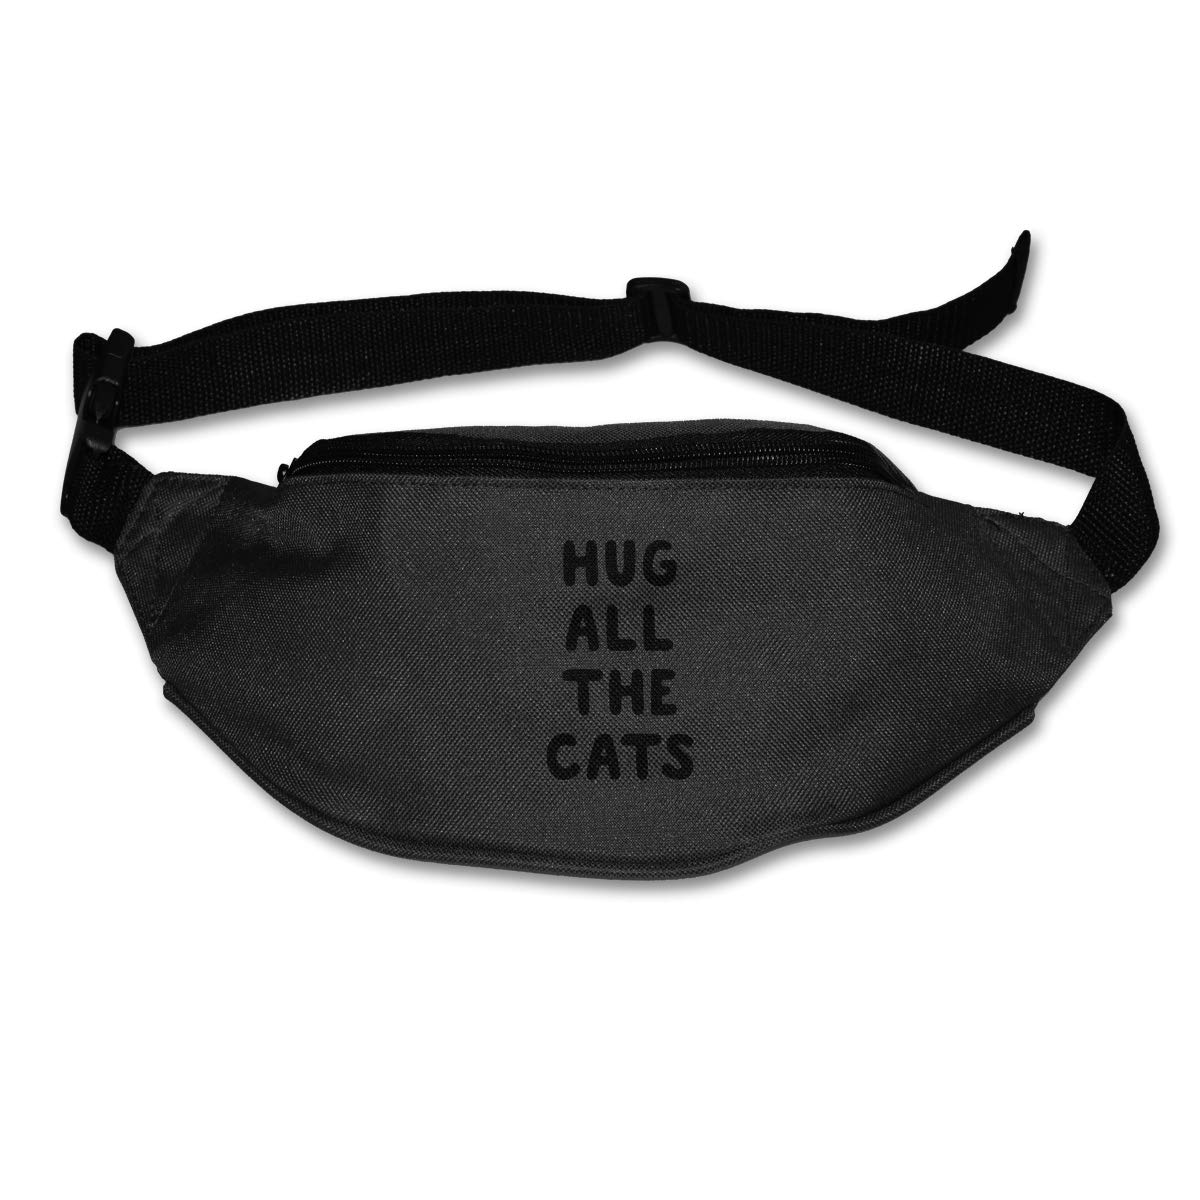 Hug All The Cats Sport Waist Pack Fanny Pack Adjustable For Run